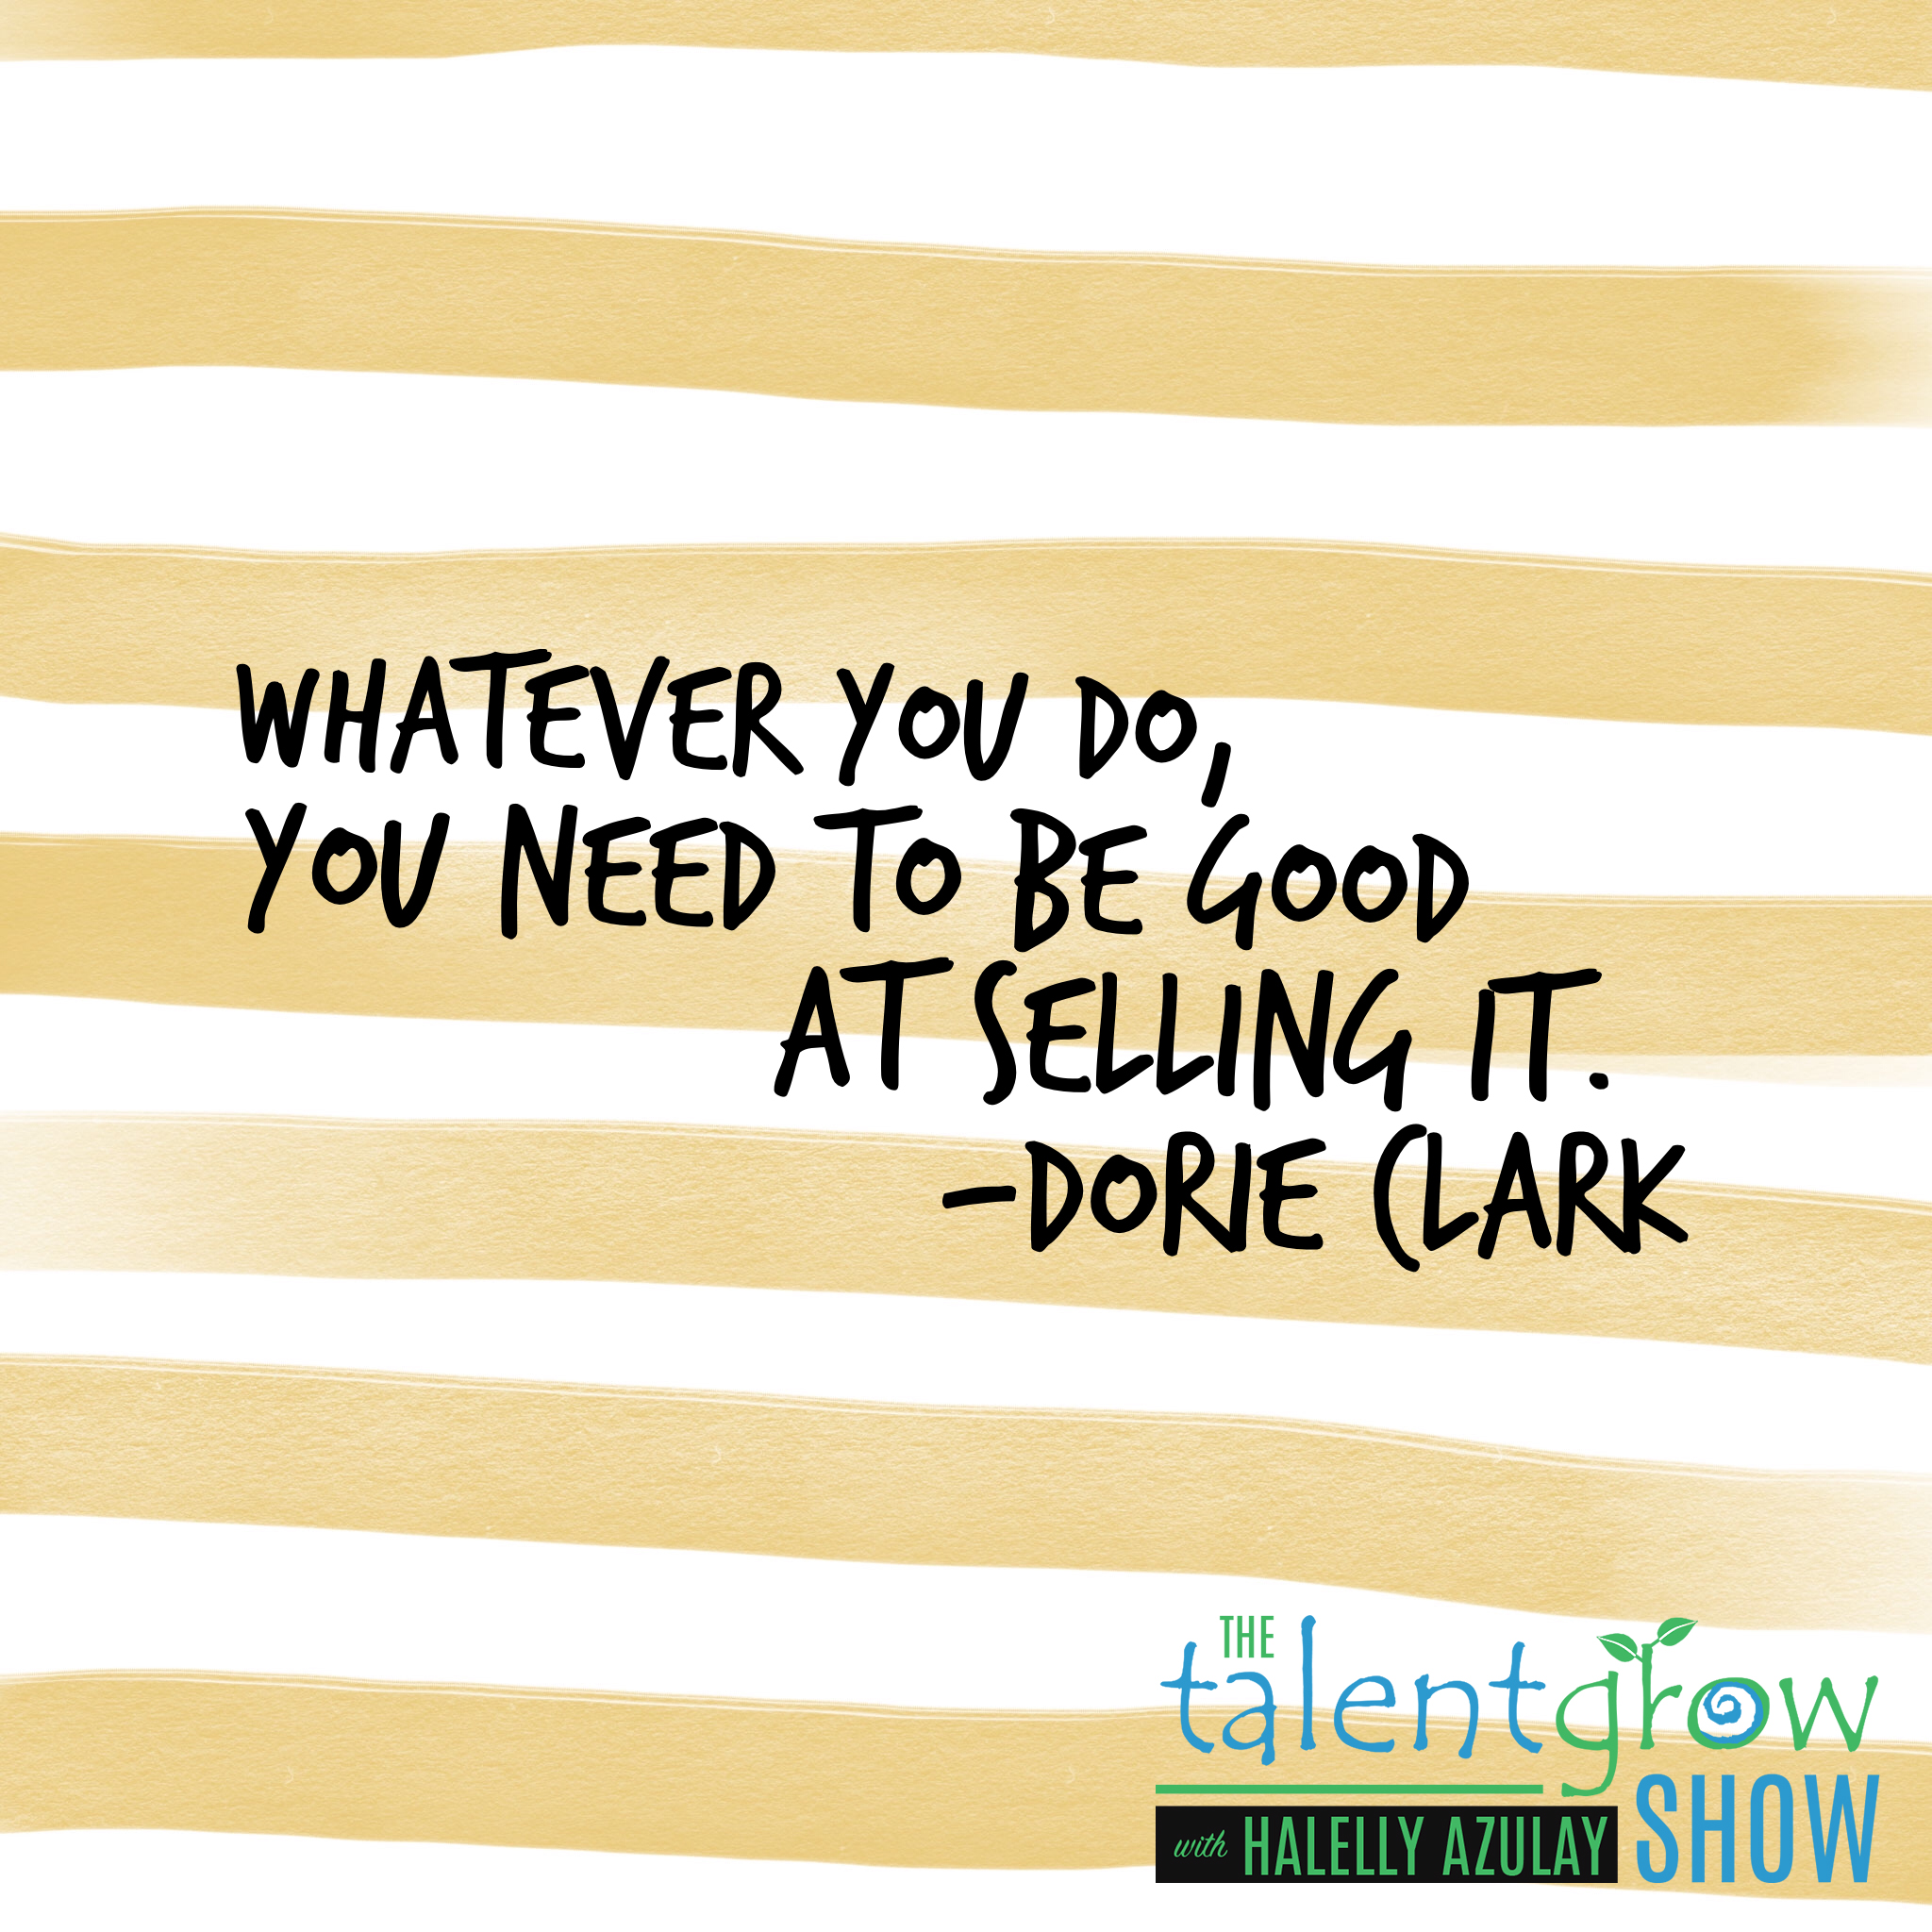 Personal branding tip from Dorie Clark on the TalentGrow Show podcast with Halelly Azulay